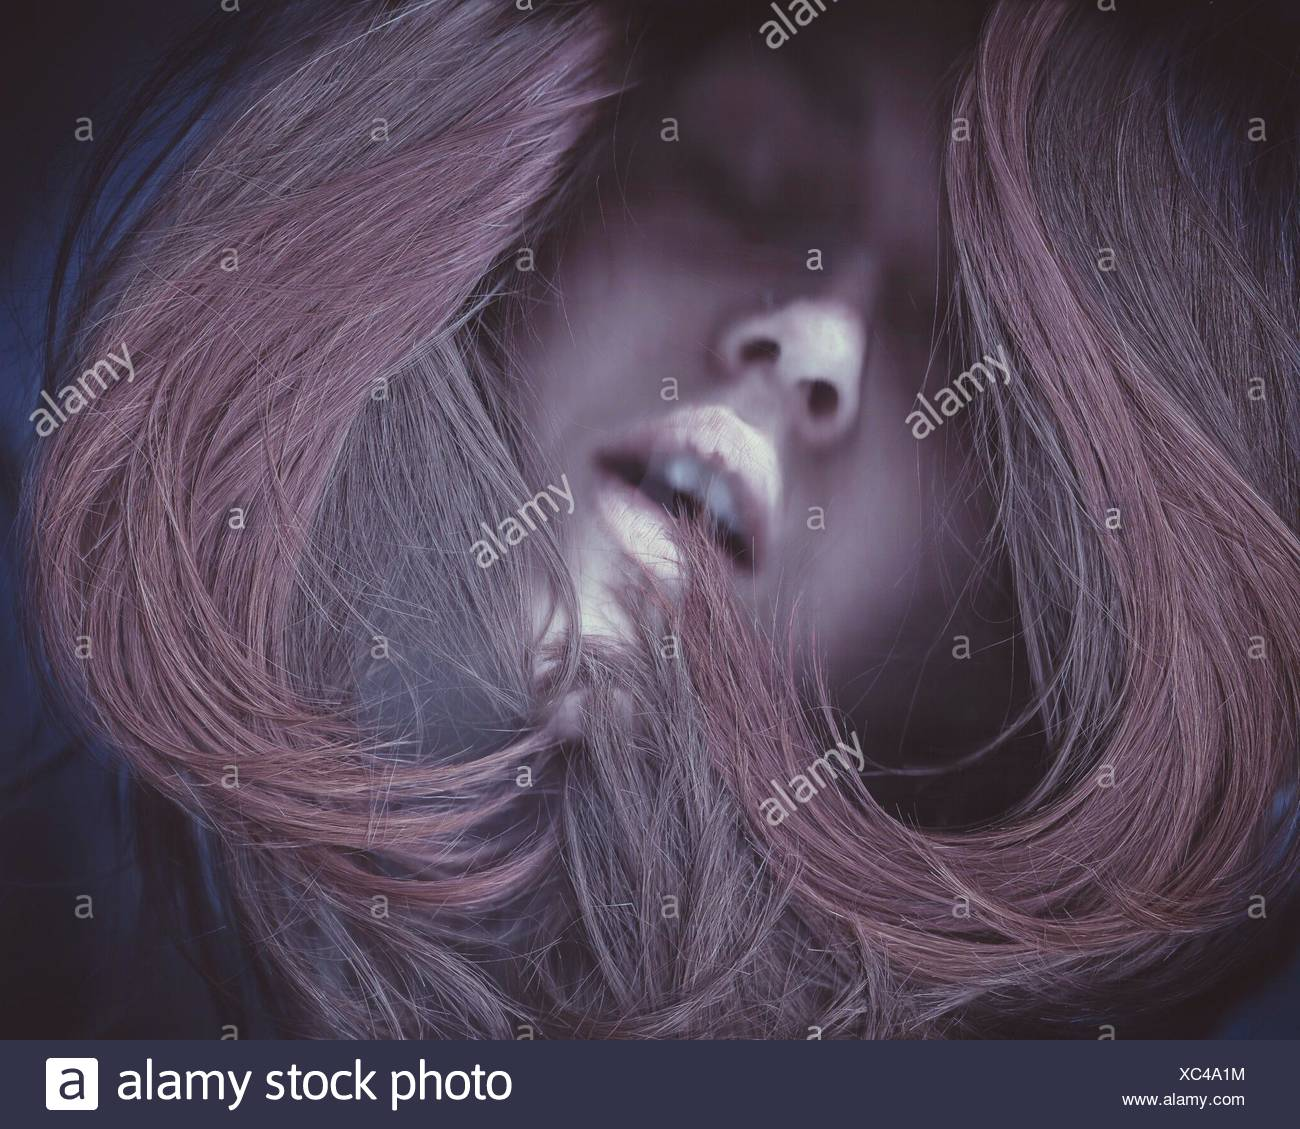 Close-Up Of Woman With Dyed Hair - Stock Image